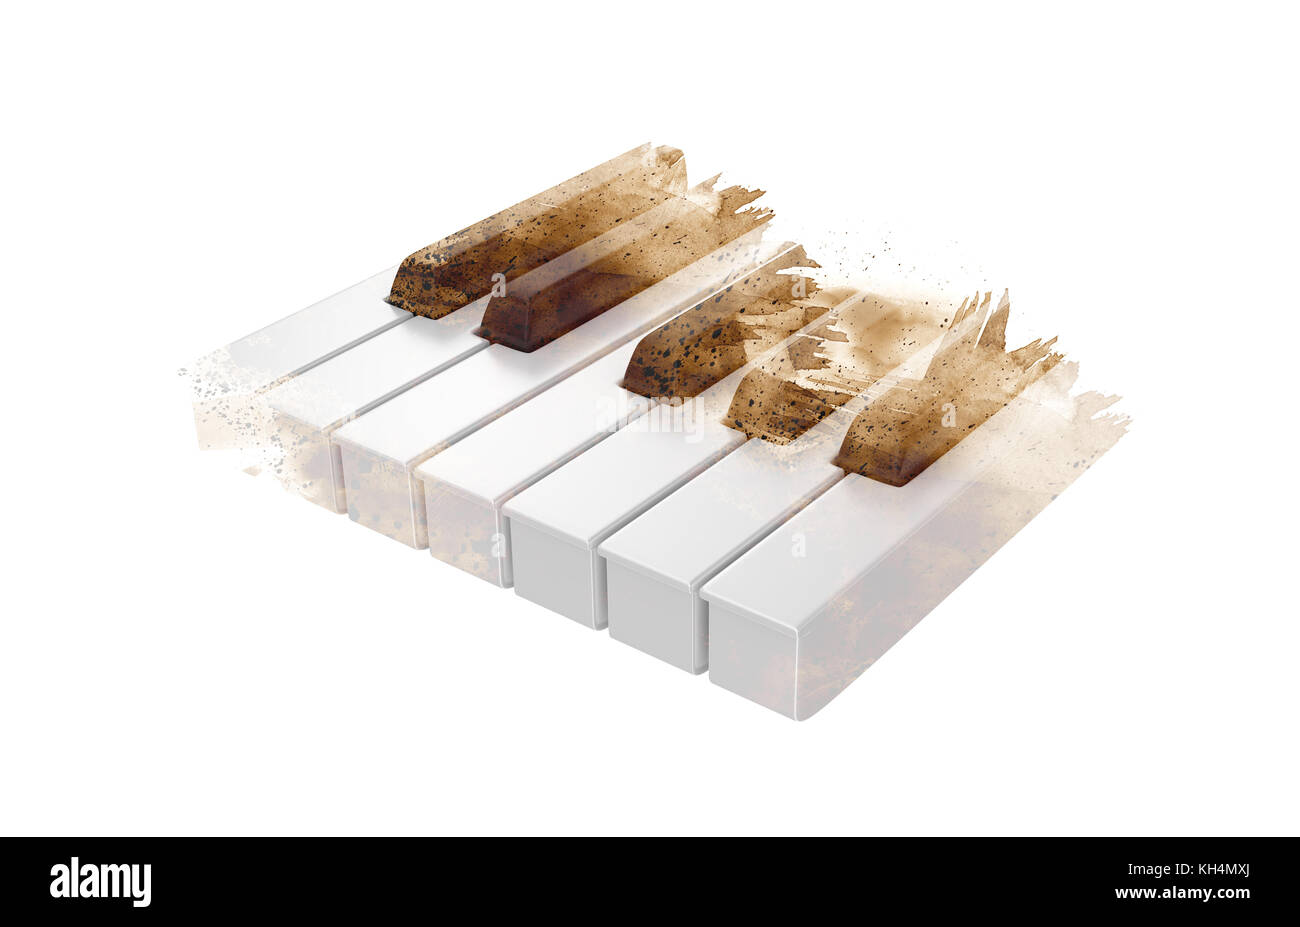 Piano keys on the white background with brush abstract style. - Stock Image